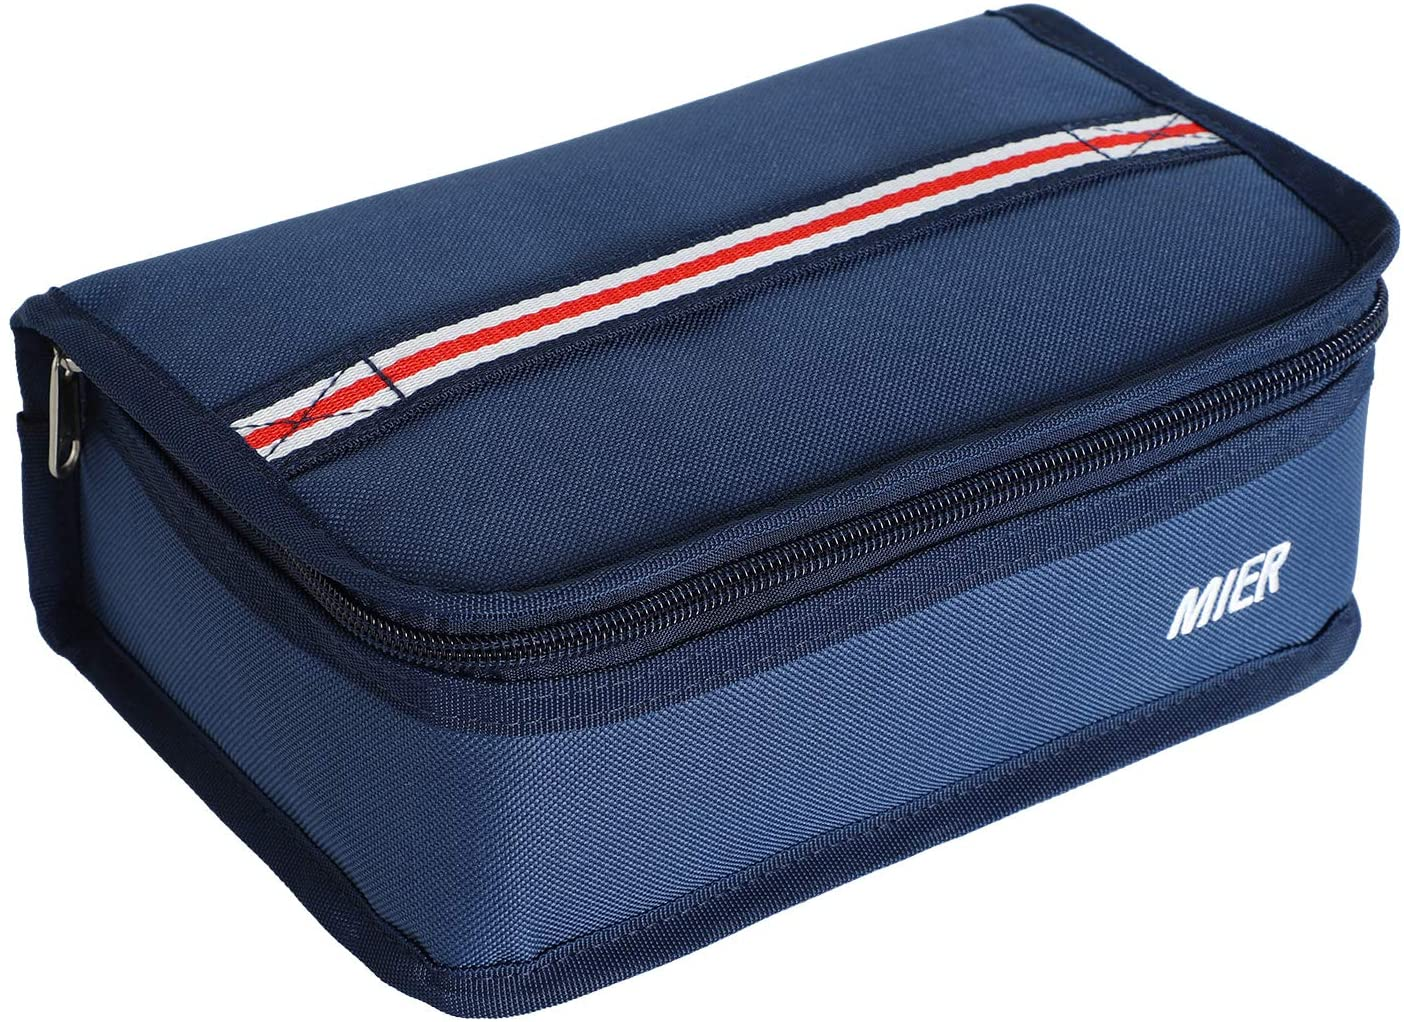 MIER Be super welcome Portable Thermal Insulated Cooler Bag Mini Lunch specialty shop for Ki